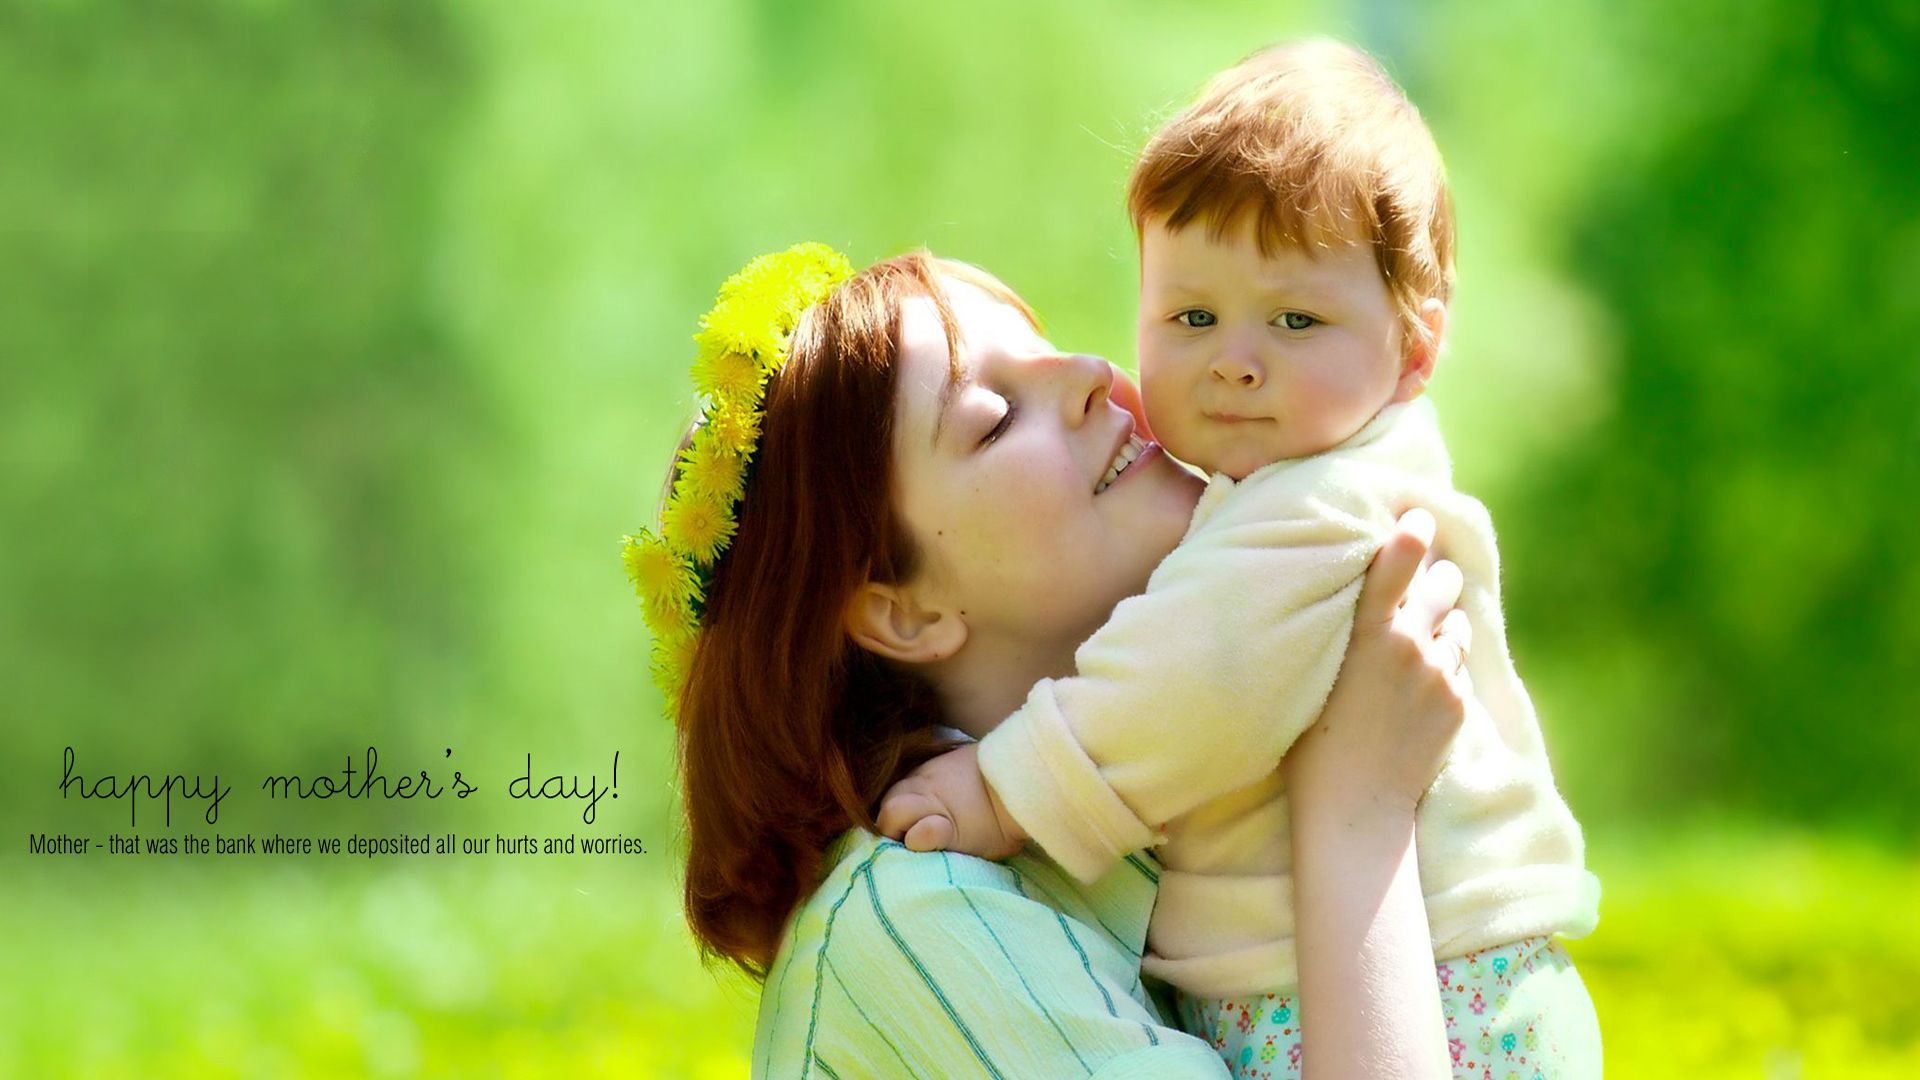 Love And Baby Wallpaper : Mother s Day Background - Wallpaper, High Definition, High Quality, Widescreen